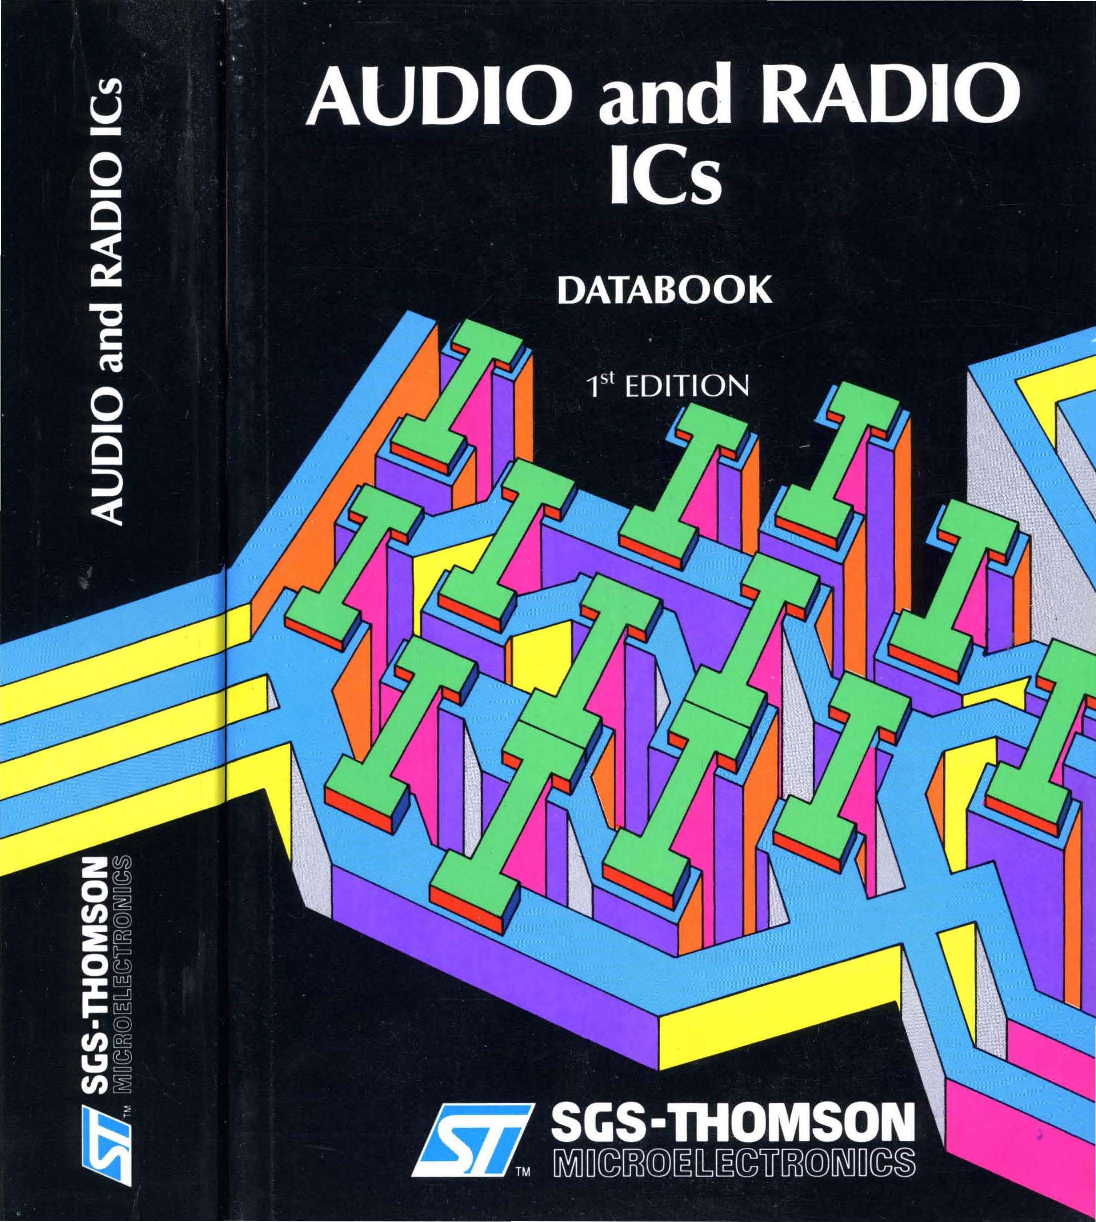 1988 Sgs Thomson Audio And Radio Ics Databook 1ed Tda2004 Car Stereo Amplifier Circuit Electronic Circuits